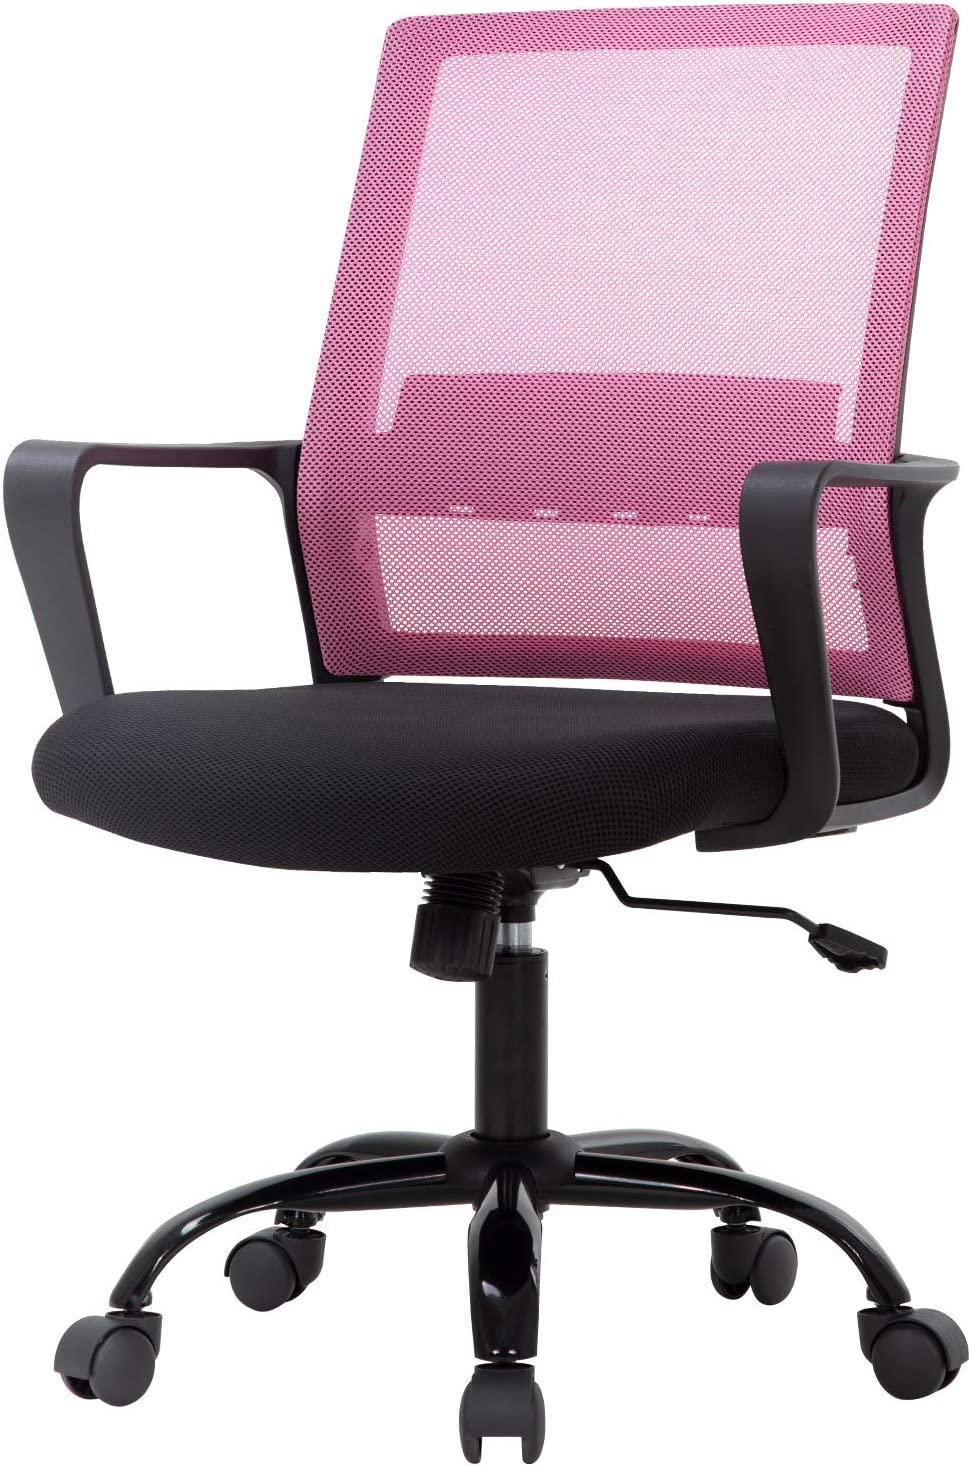 Office Chair Ergonomic Desk Task Chair Mesh Computer Chair Mid-Back Mesh Home Office Swivel Chair Modern Executive Chair with Wheels Armrests Lumbar Support(Pink)